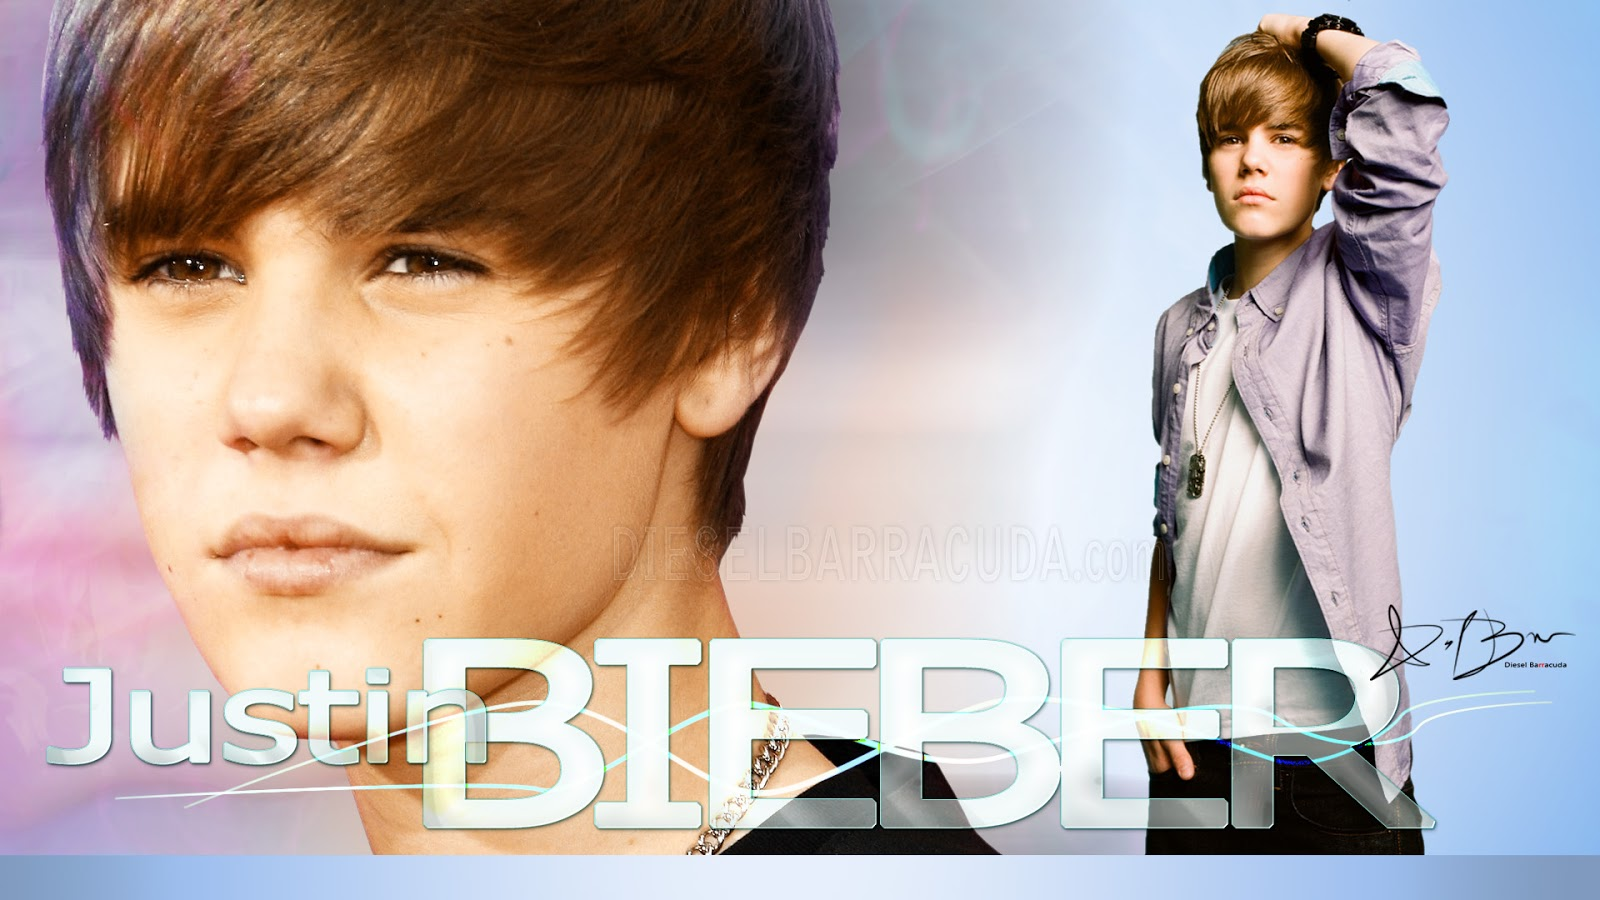 Abhishek Name Wallpaper 3d Justin Bieber Wallpapers Desktop Wallpapers